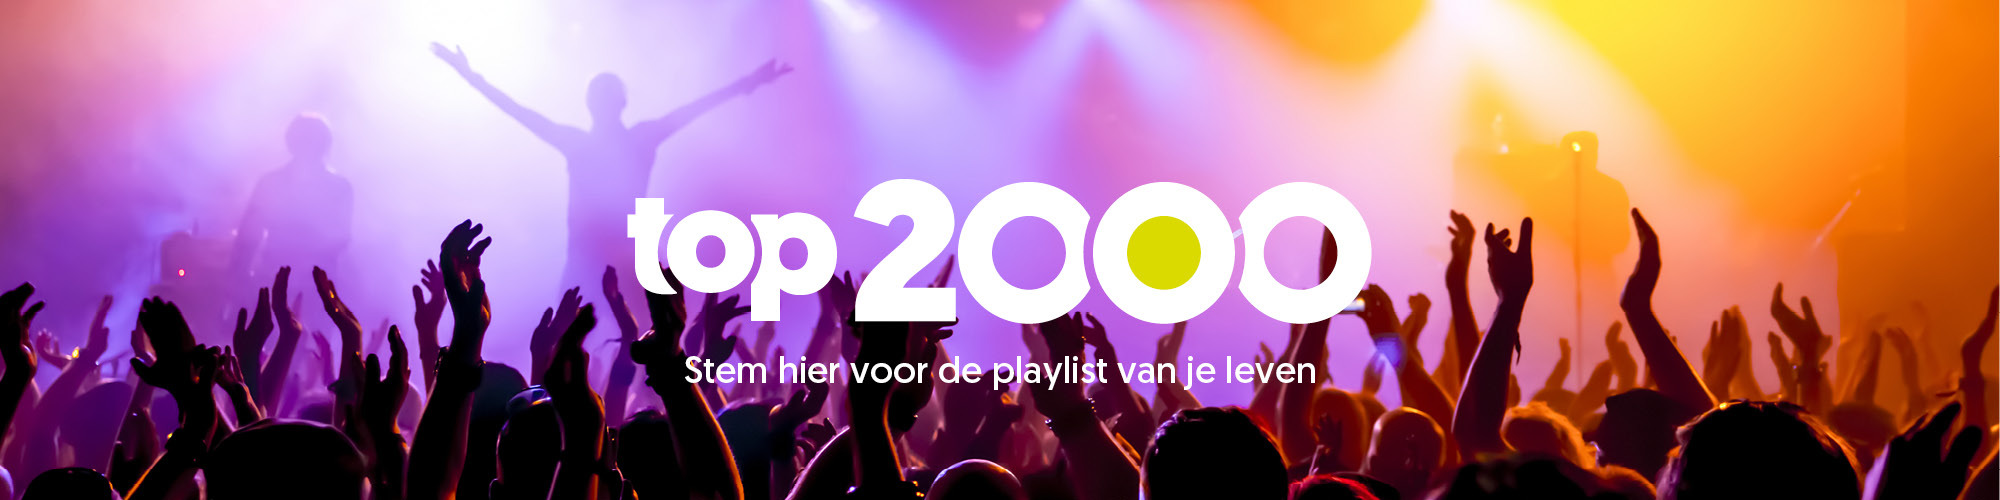 Joe carrousel top2000 finaal stem